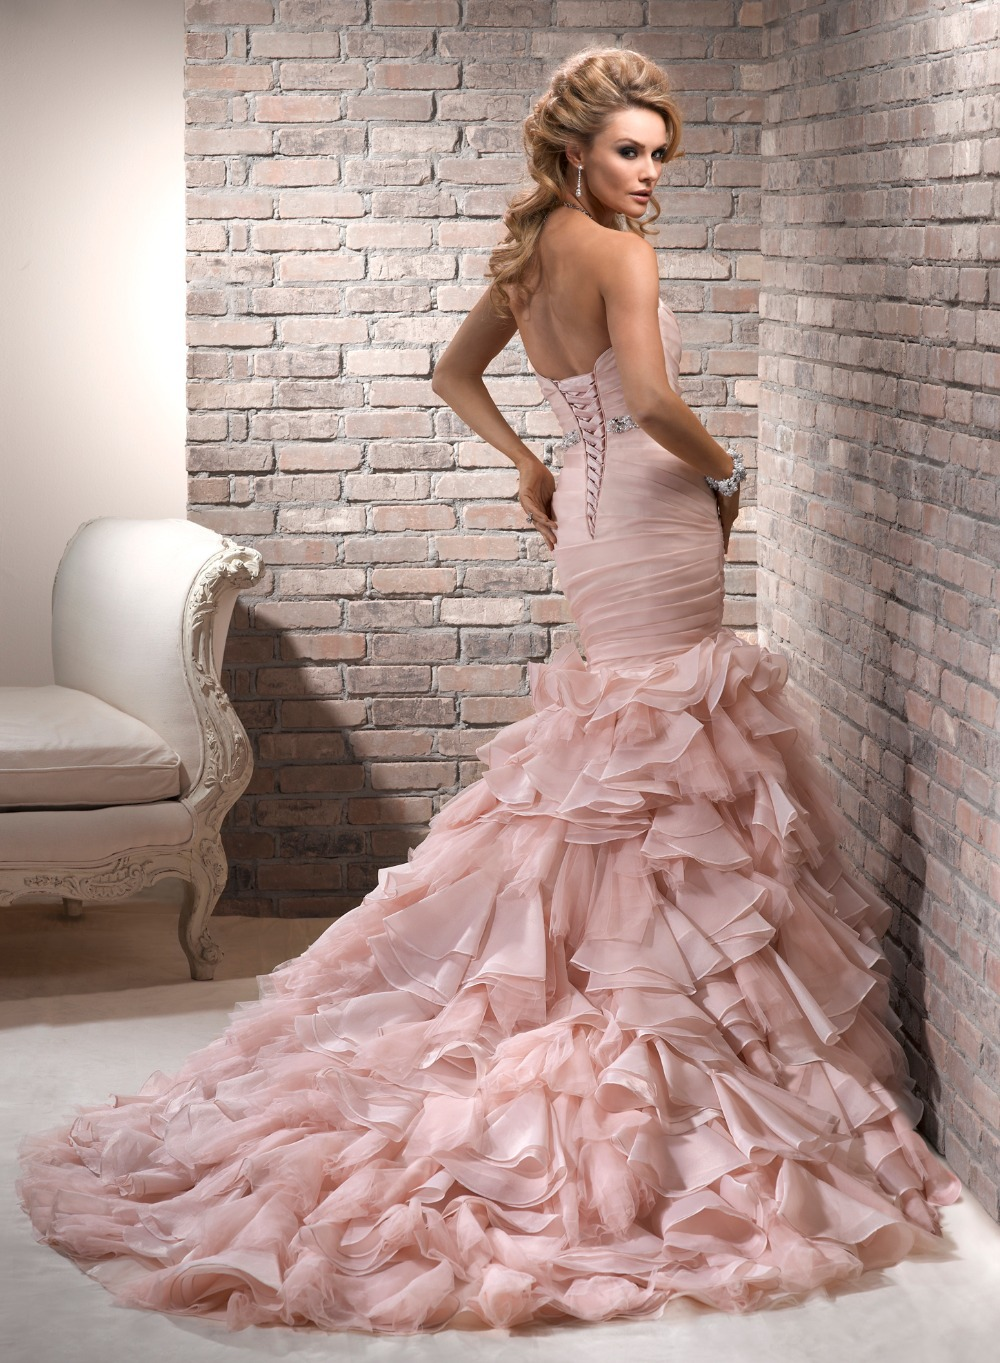 Wedding Dress Rentals Miami - Vosoi.com